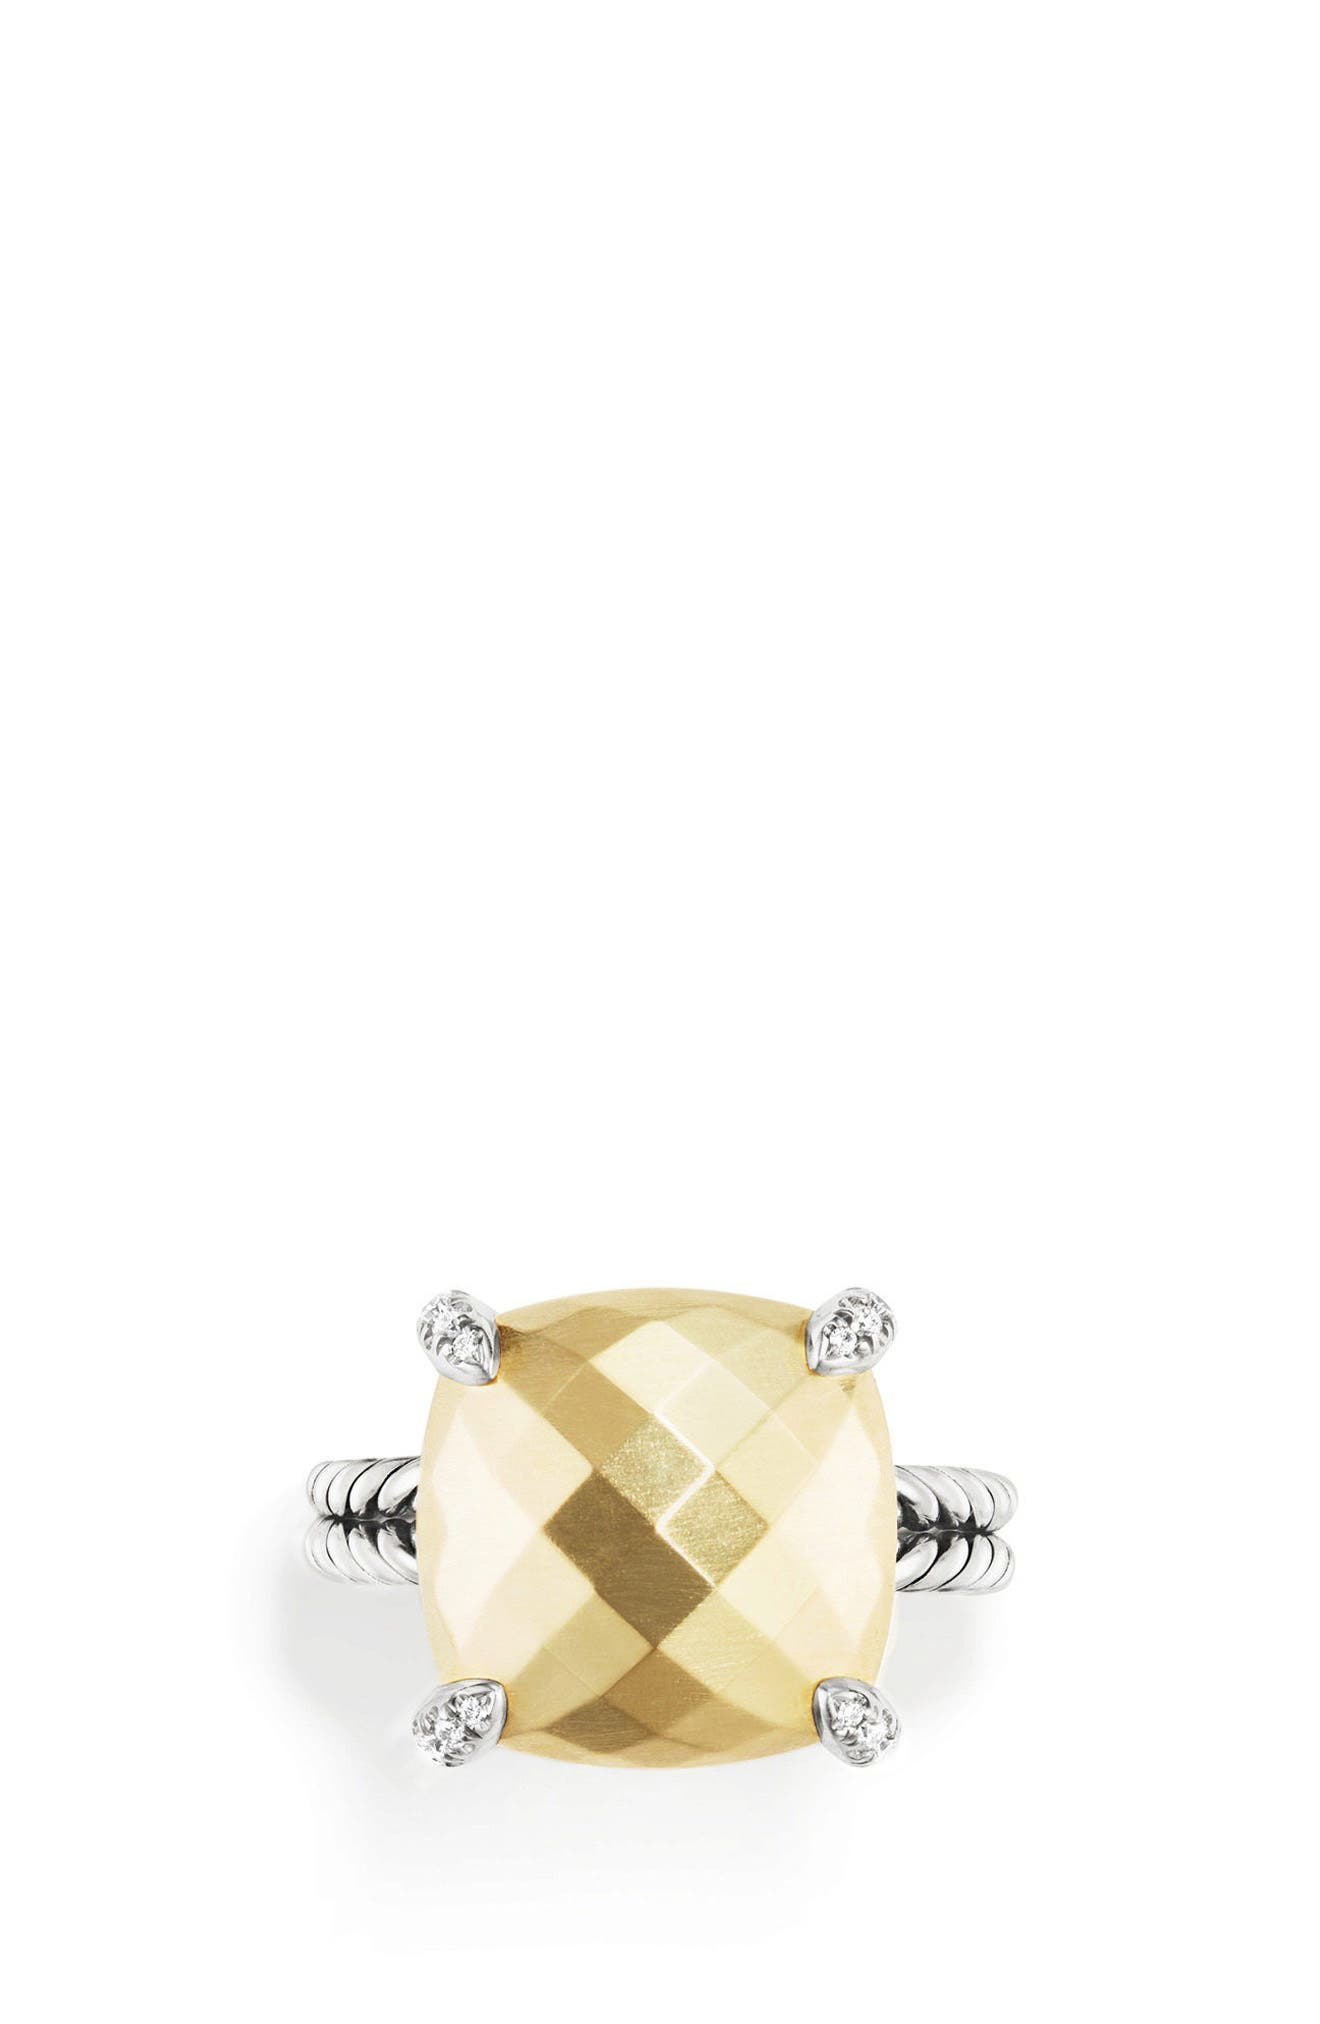 David Yurman Chatelaine Ring with 18K Gold and Diamonds